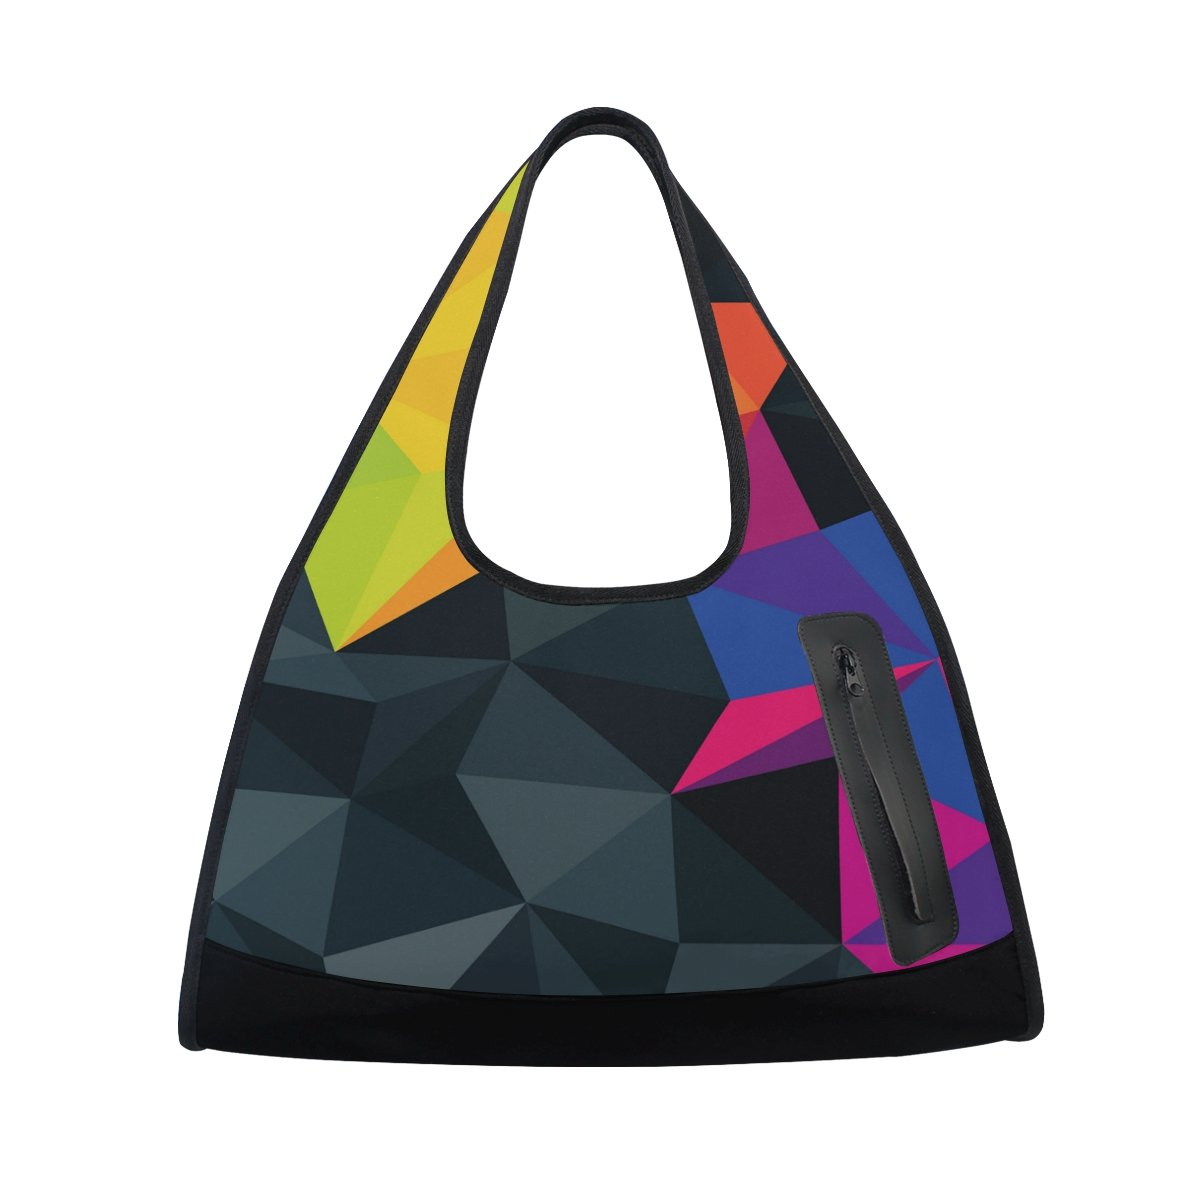 Gym Bag Sports Holdall 3D Geometric Figure Triangle Canvas Shoulder Bag Overnight Travel Bag for Men and Women